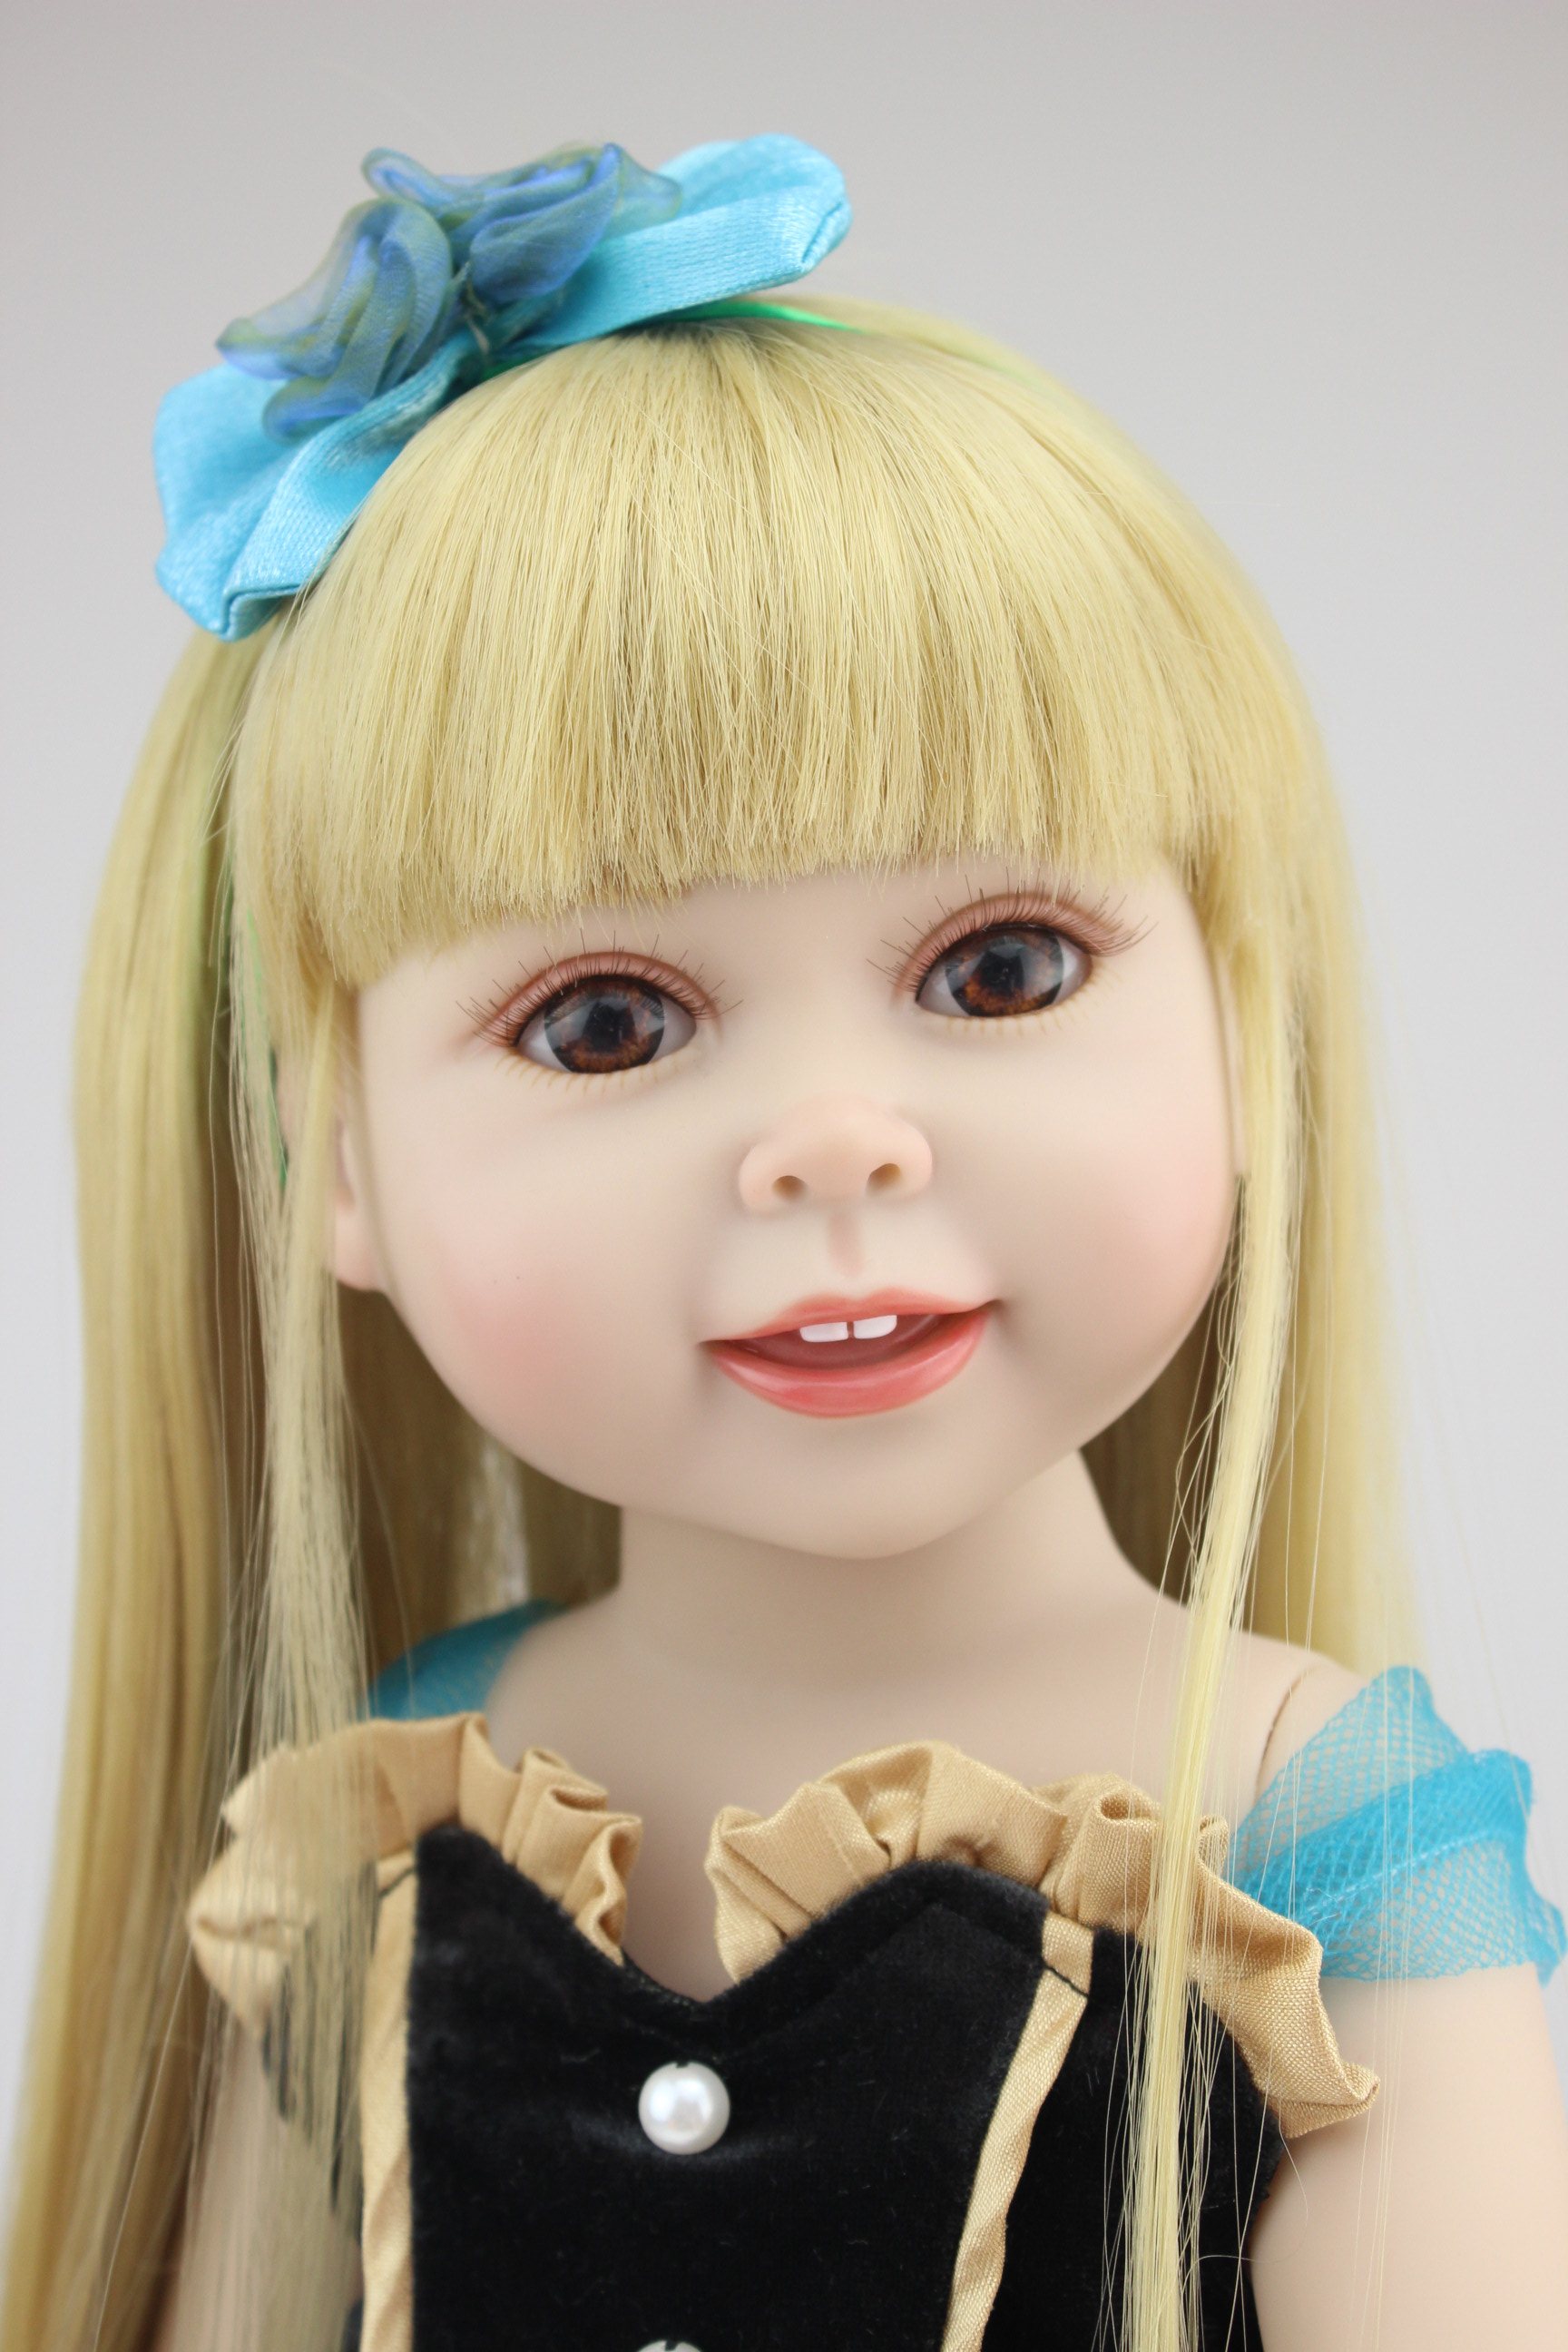 Cheap wholesale 18 Smiling brown Eyes American Girl Doll Toys